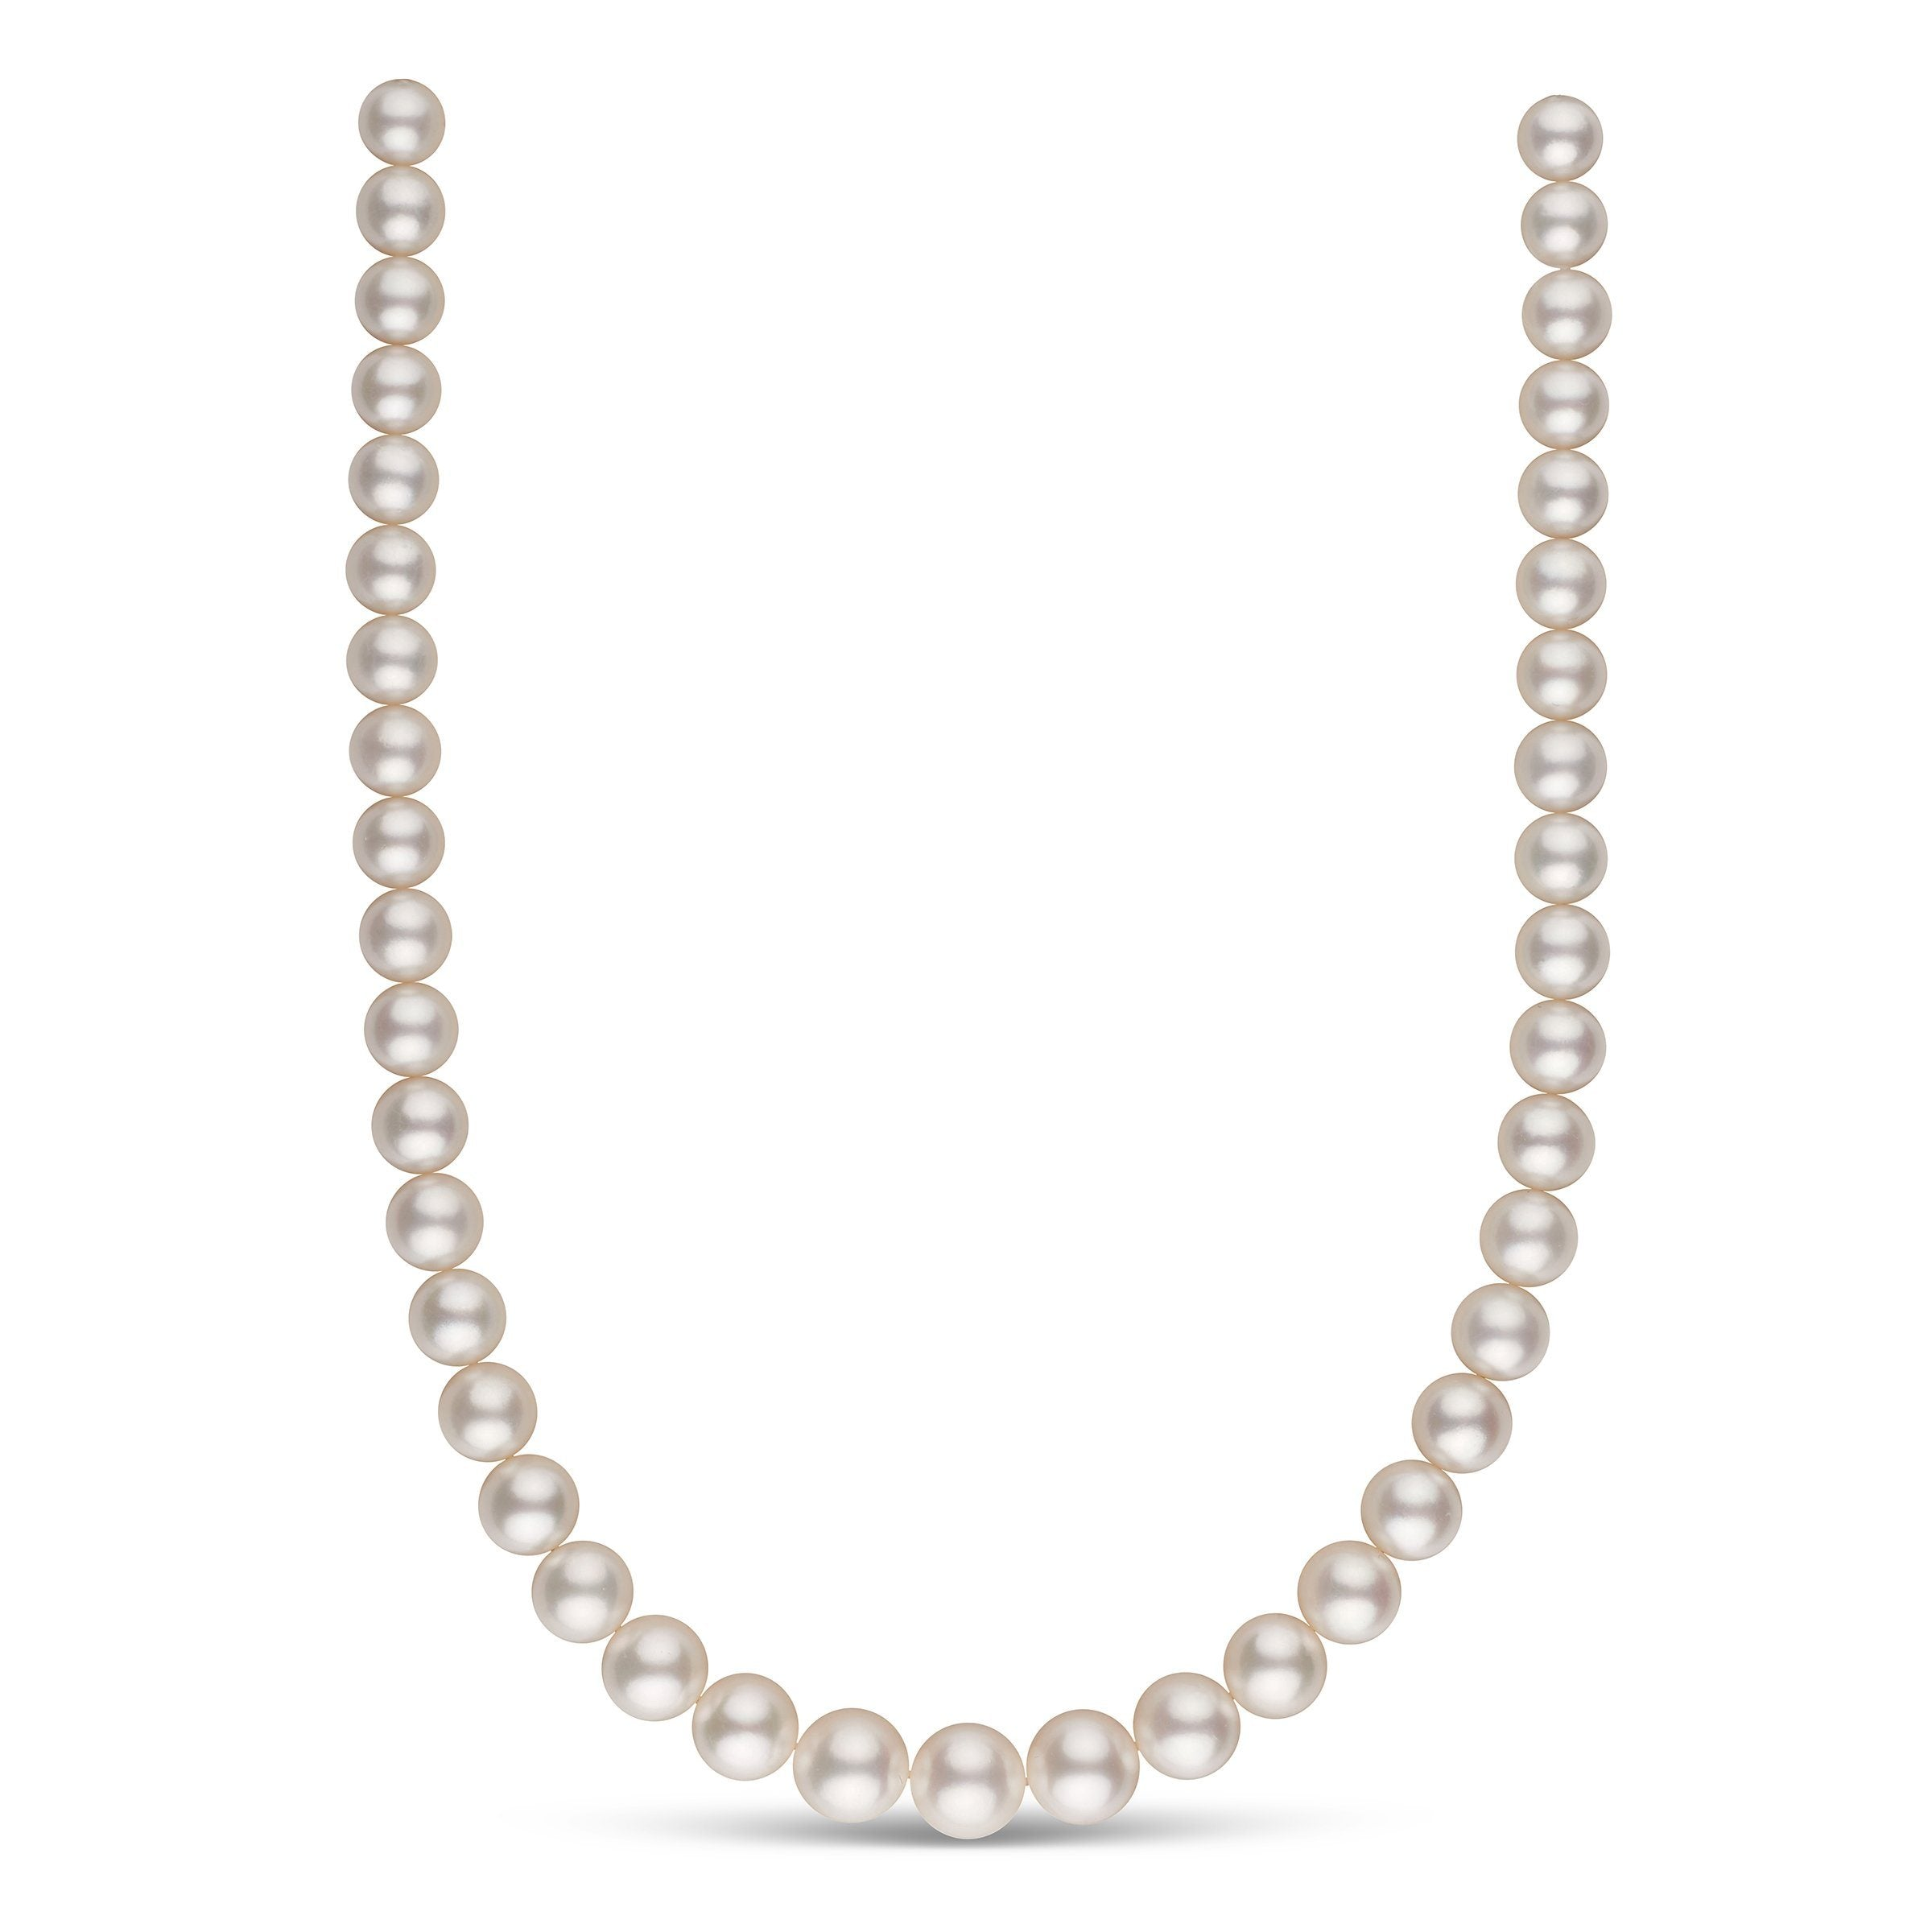 9.0-11.9 mm AA+/AAA White South Sea Round Pearl Necklace